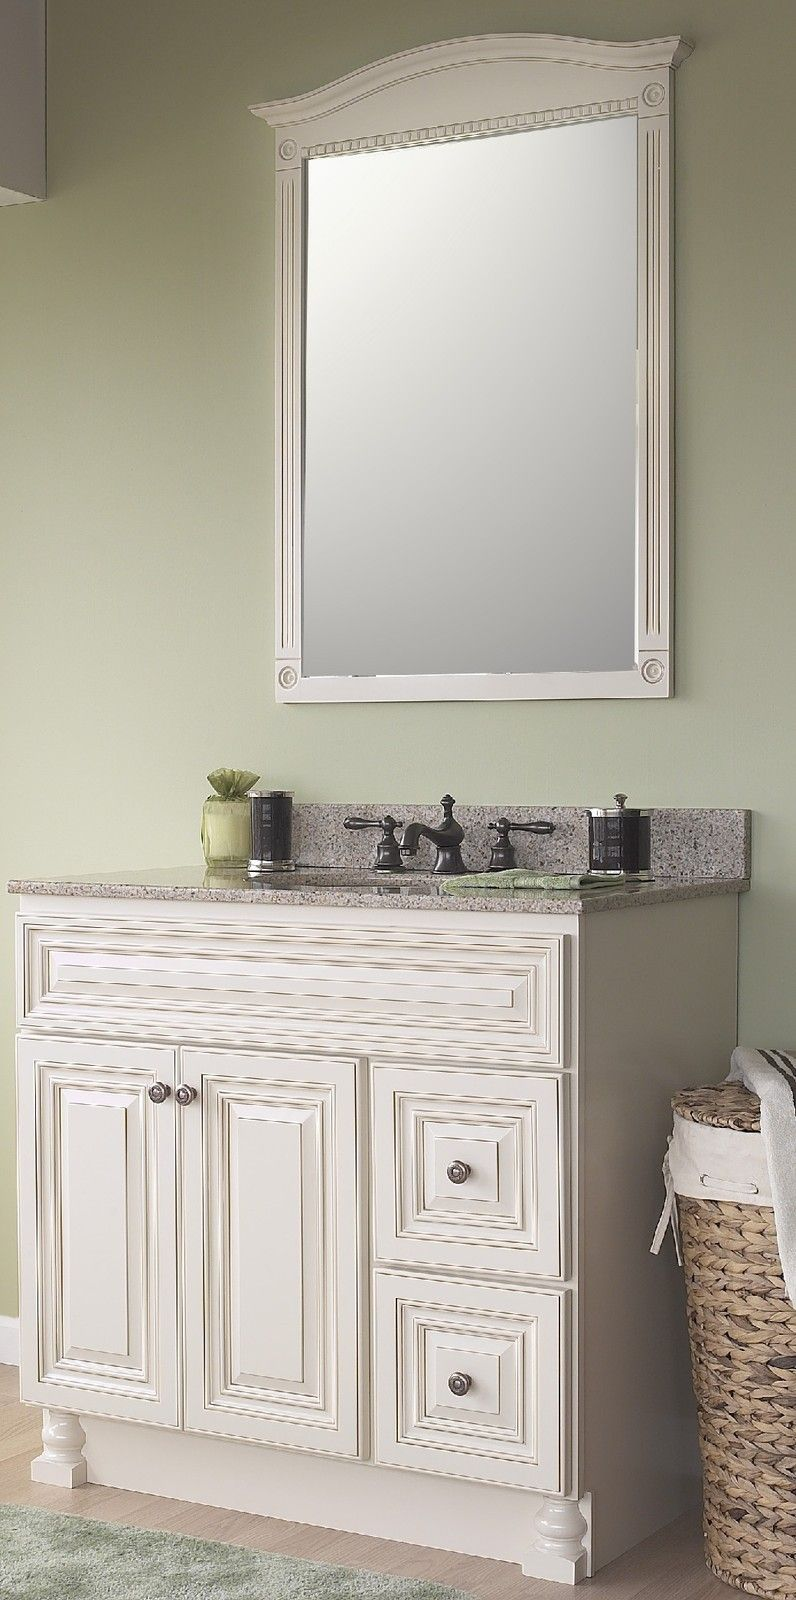 Best Jsi Wheaton Cream Bathroom Vanity Set 36 Cabinet Base 2 640 x 480